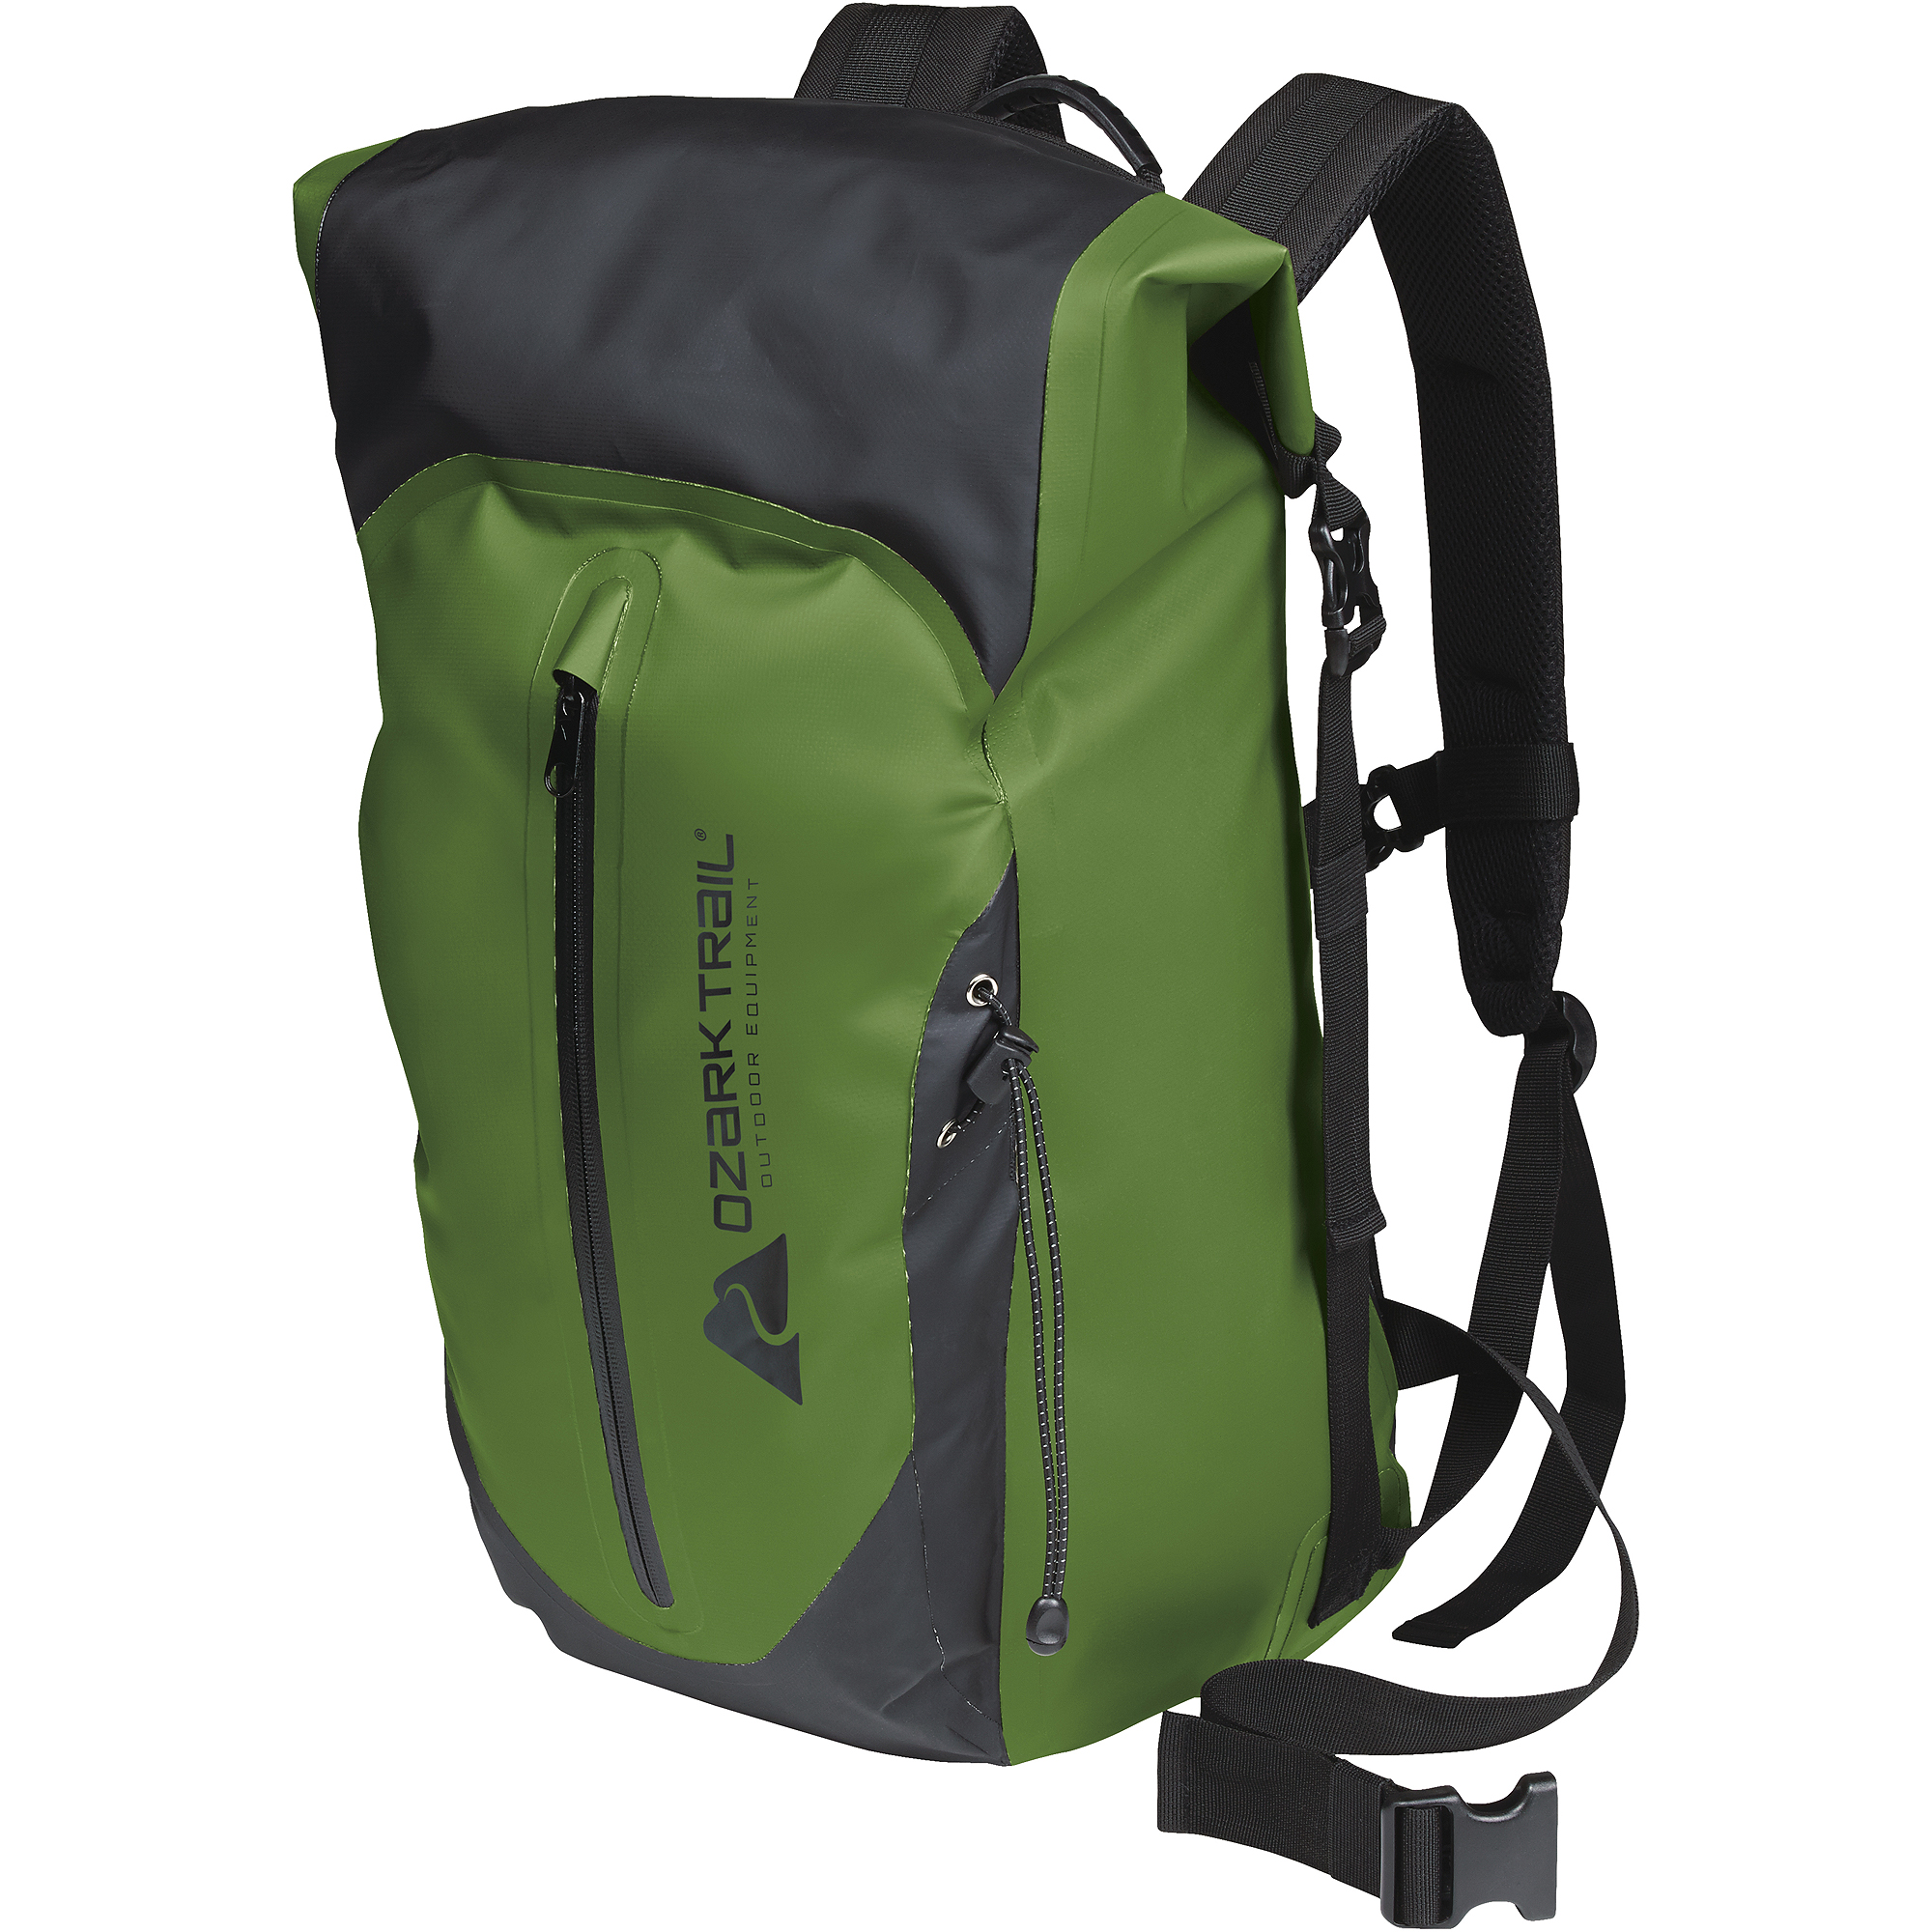 Ozark Trail 40L Waterproof Roll-Top Drybag Backpack - Walmart.com